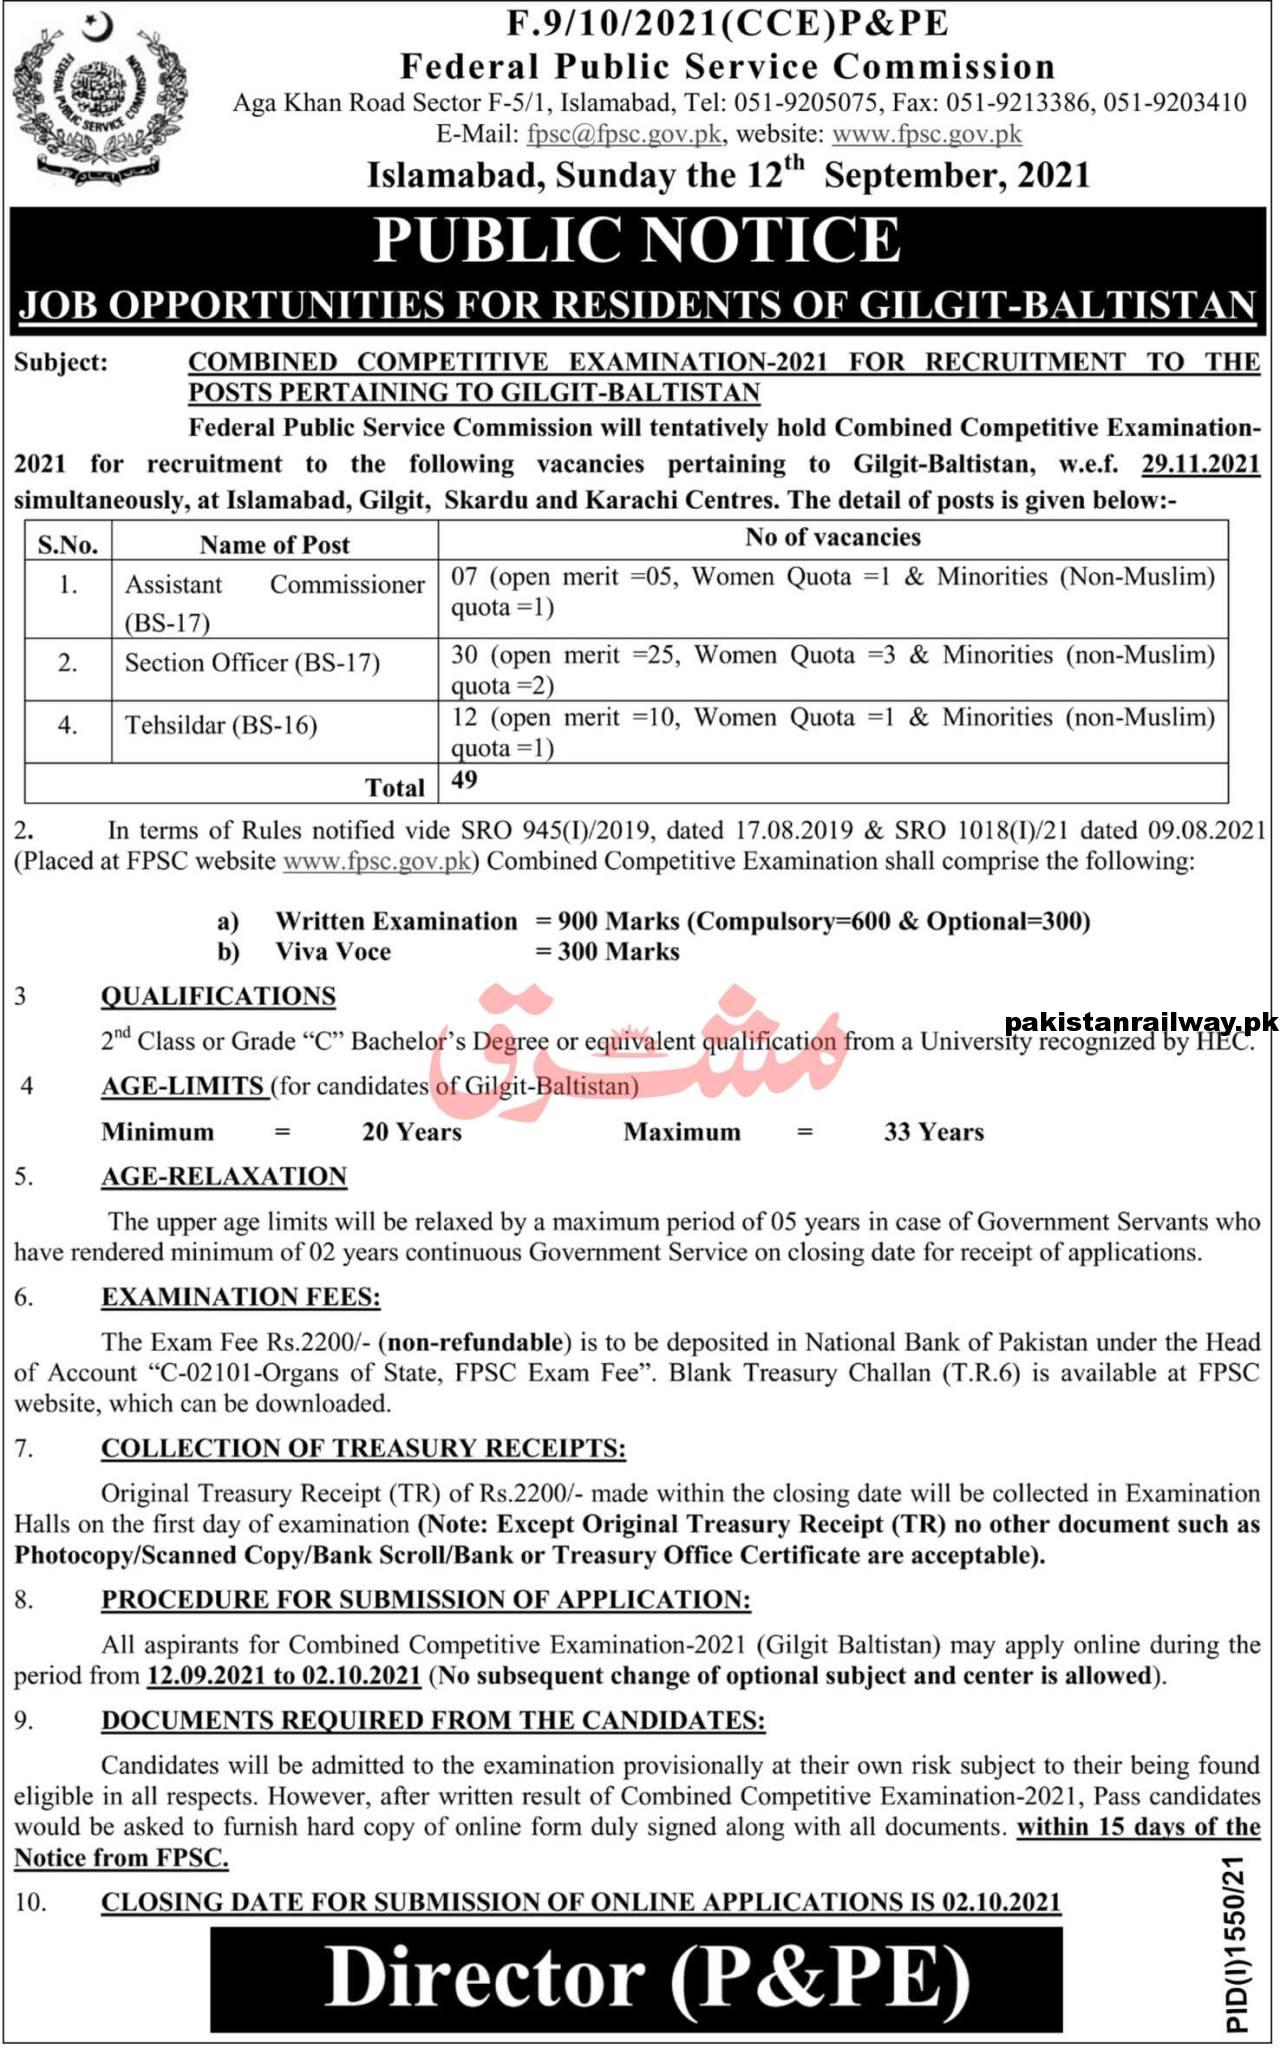 Government Jobs in Gilgit Baltistan 2021 Via FPSC For Assistant Commissioner, Section Officer & Tehsildar